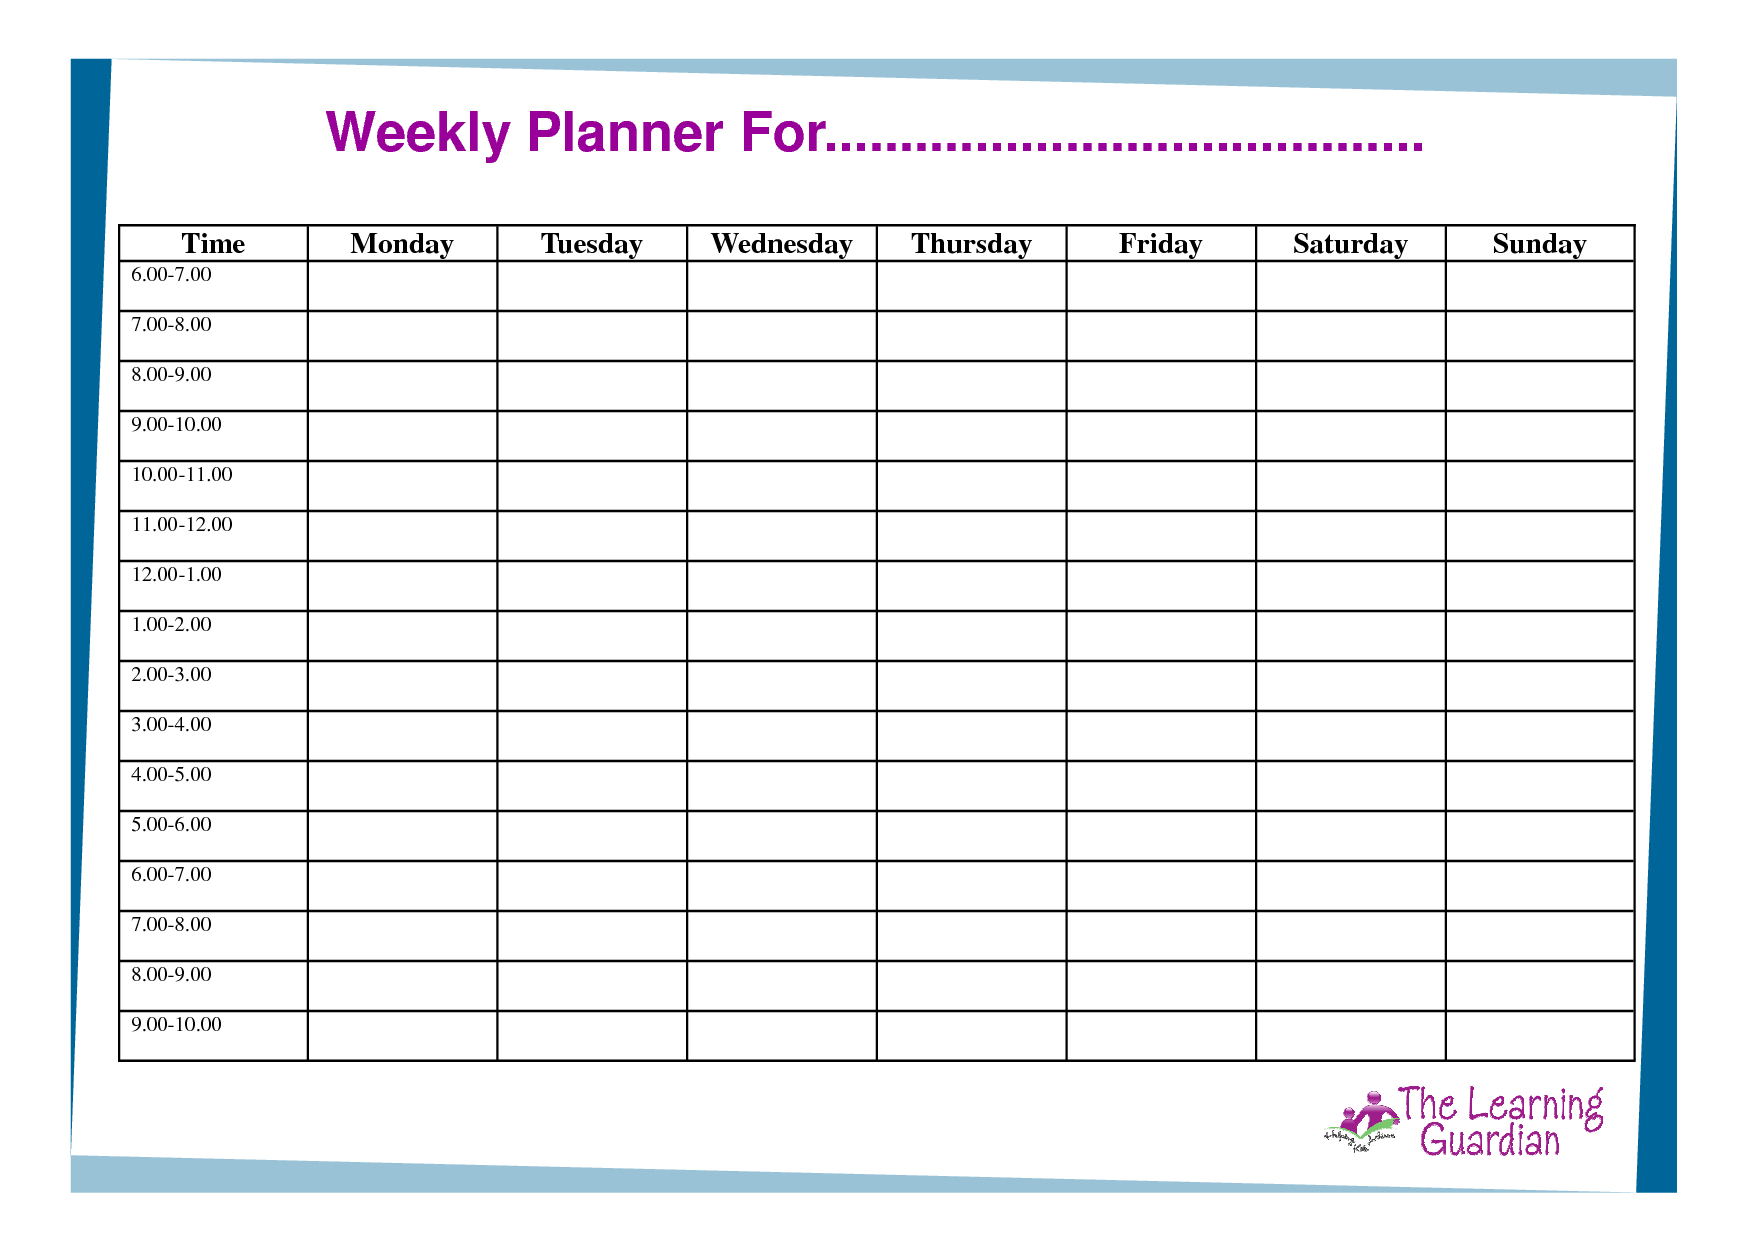 Free Printable Weekly Calendar Templates | Weekly Planner For Time inside Blank Calendar Printable With Times